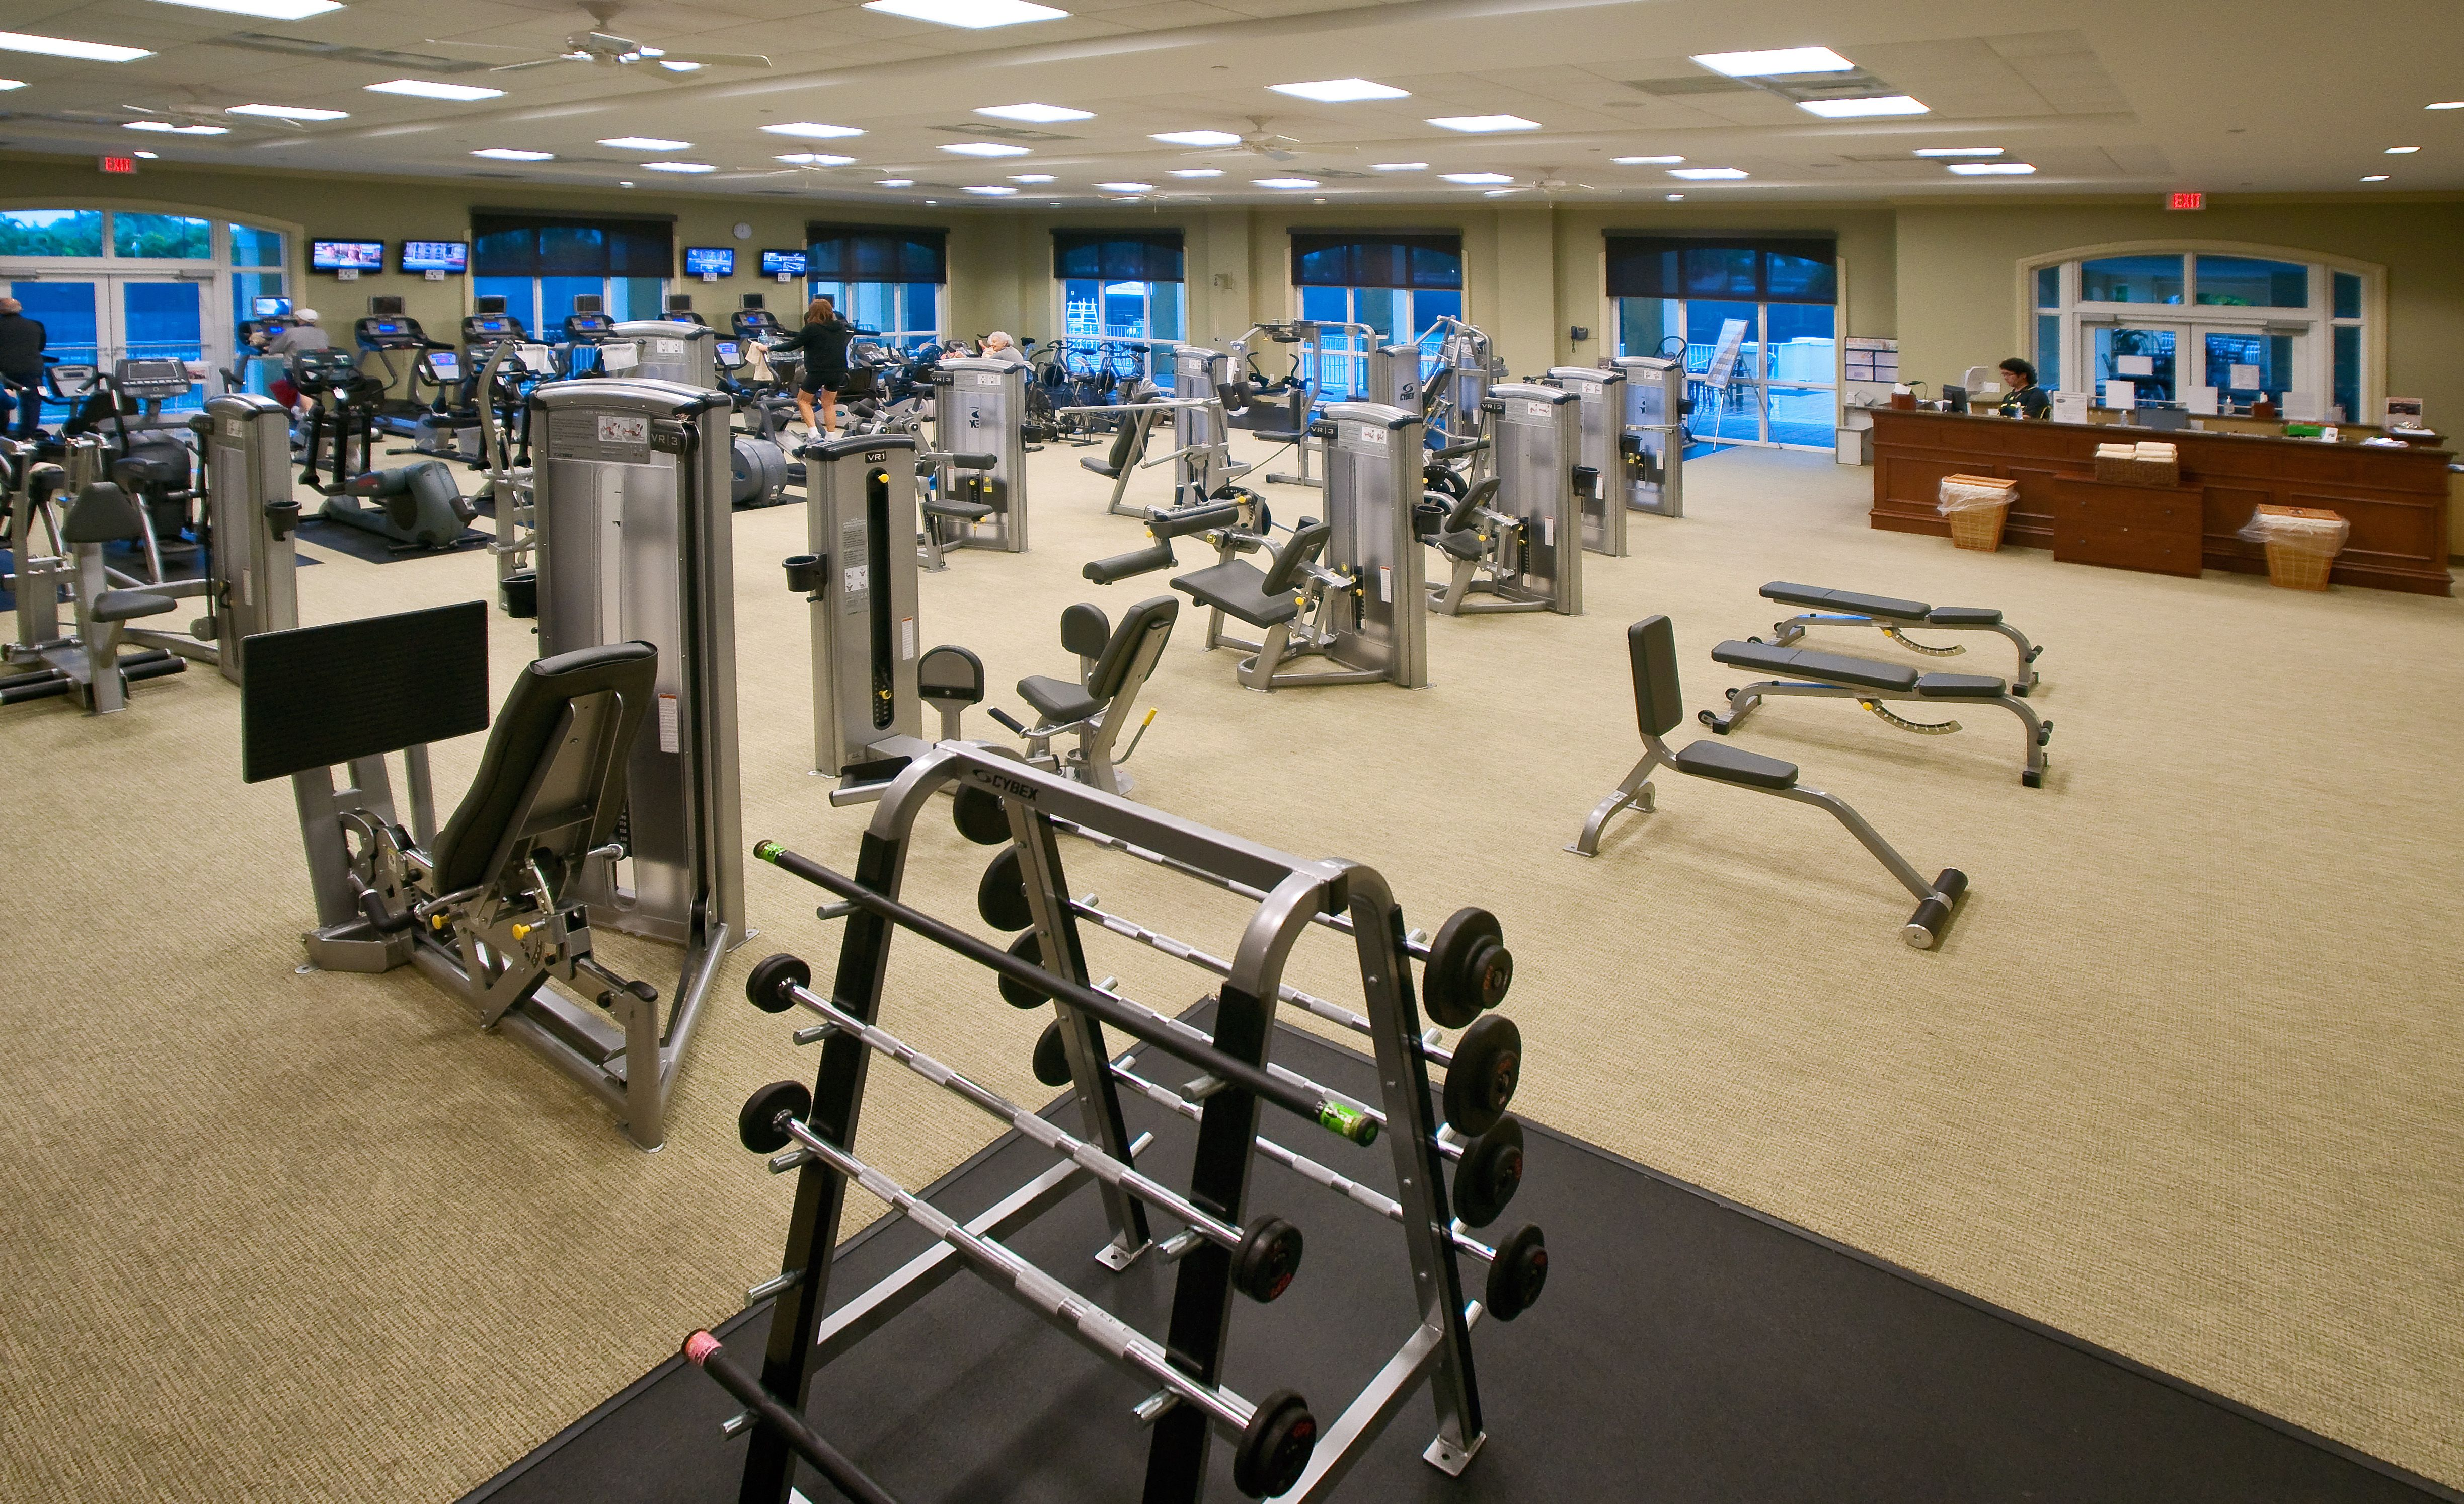 Fitness center fountains country club lake worth fl www